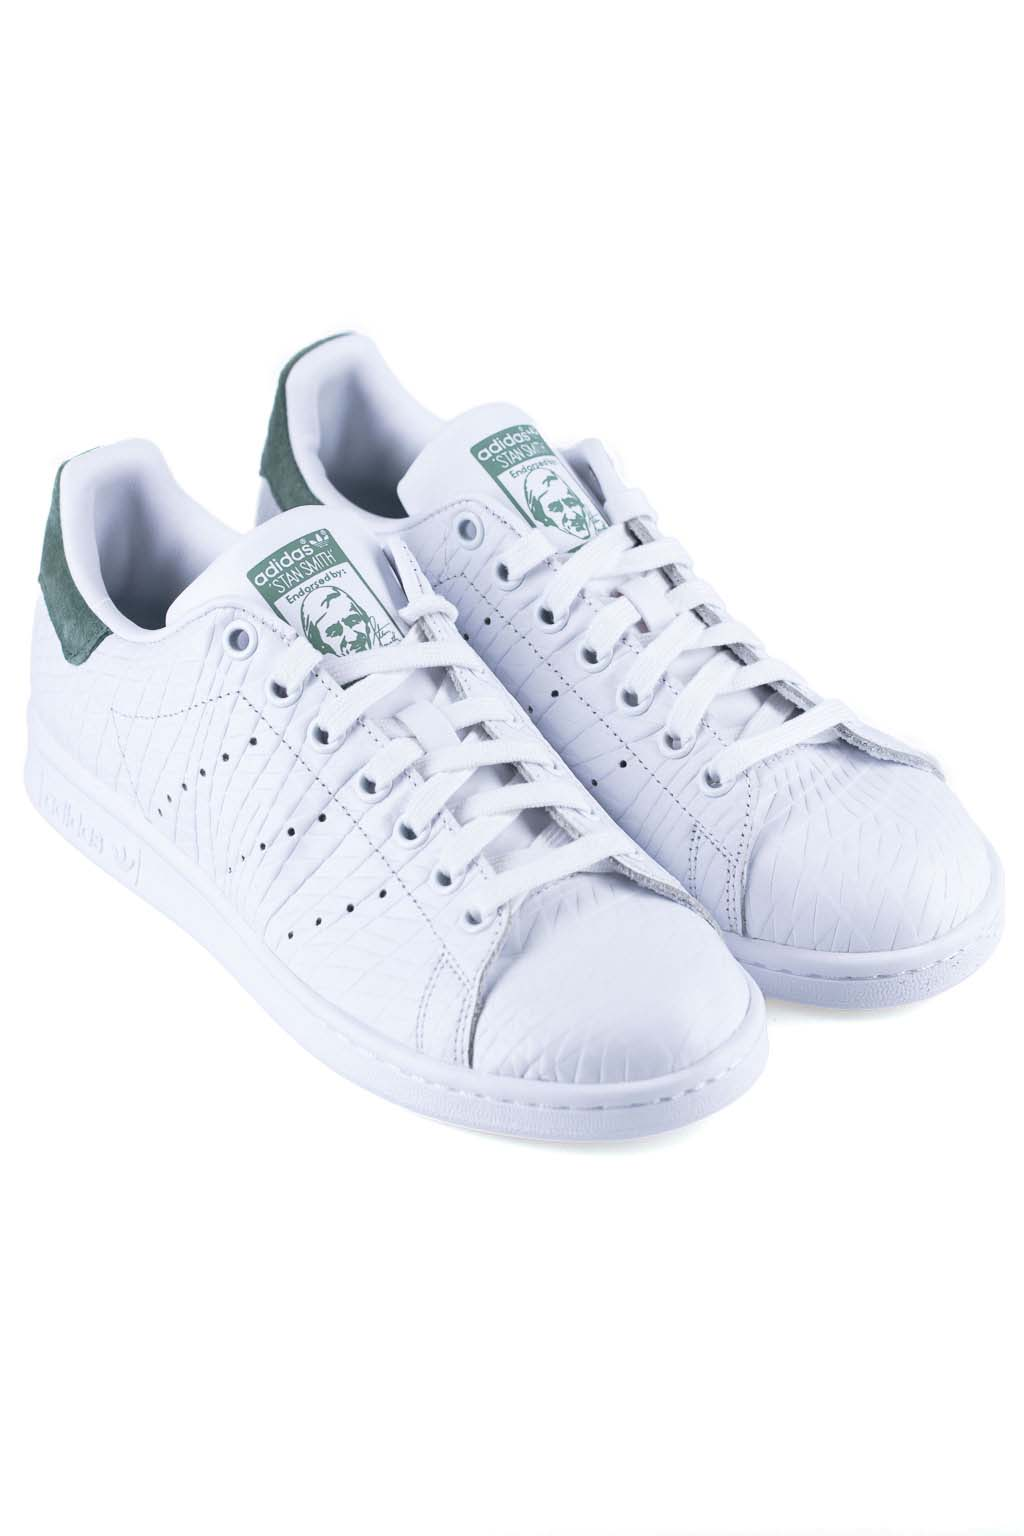 Stan Smith - Trace Green